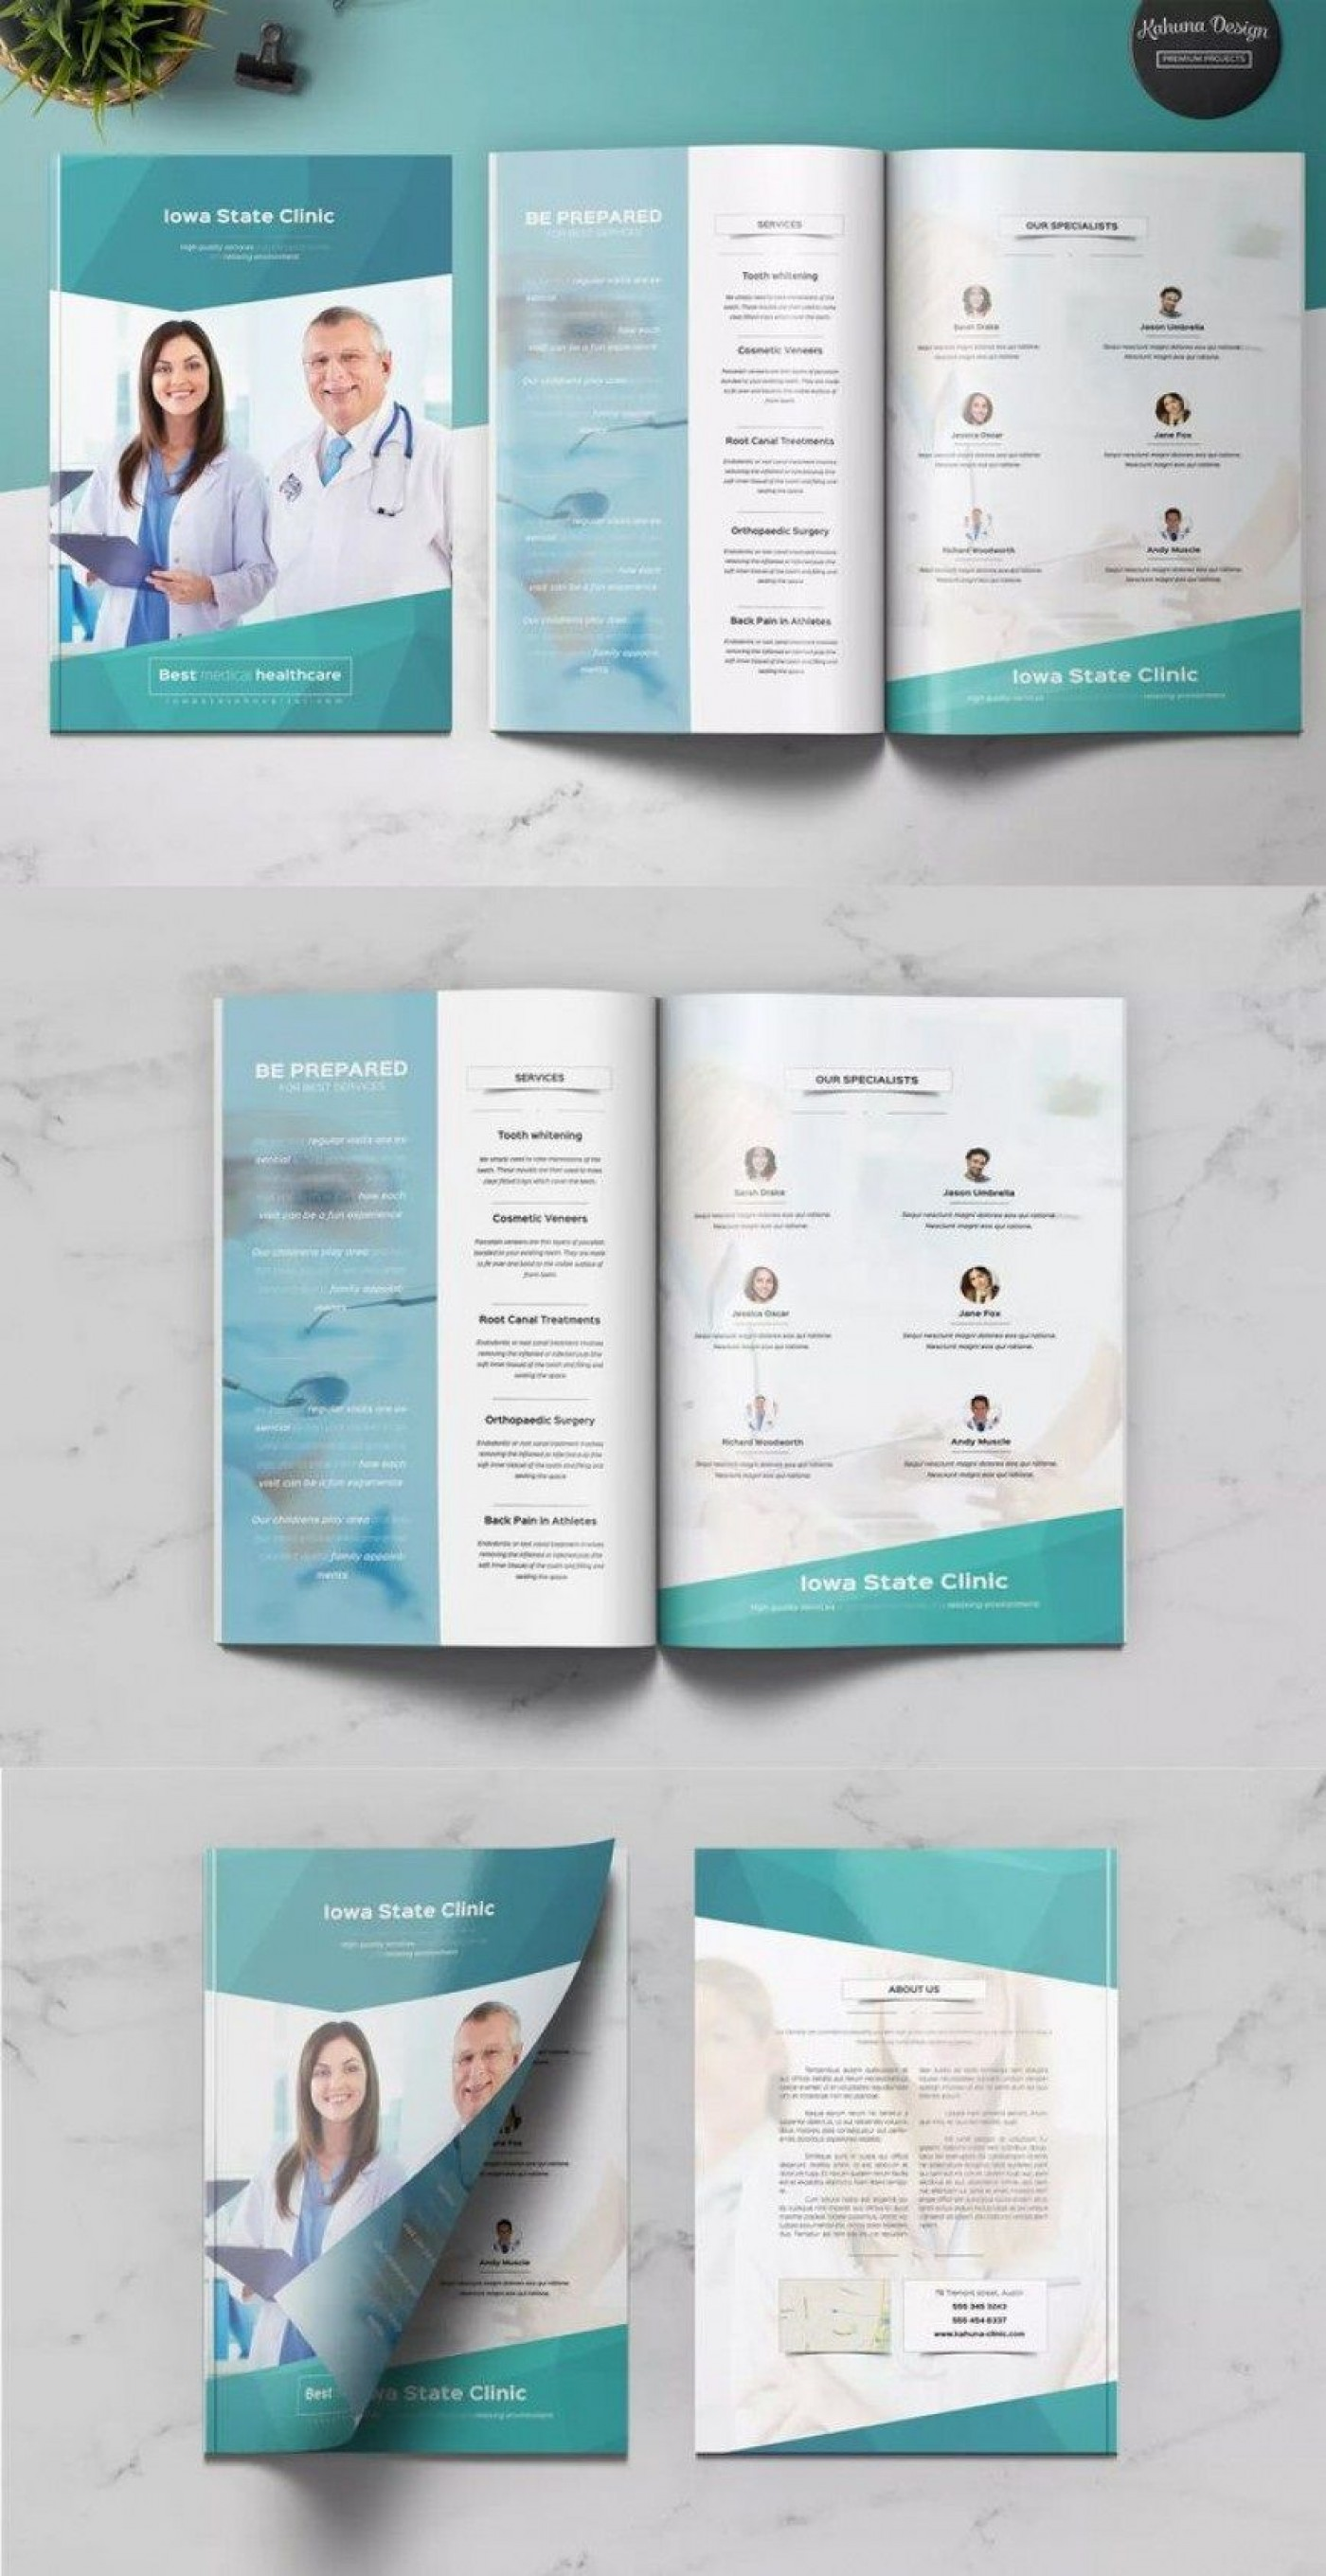 007 Remarkable Download Brochure Template For Microsoft Word 2007 High Def  Free1400